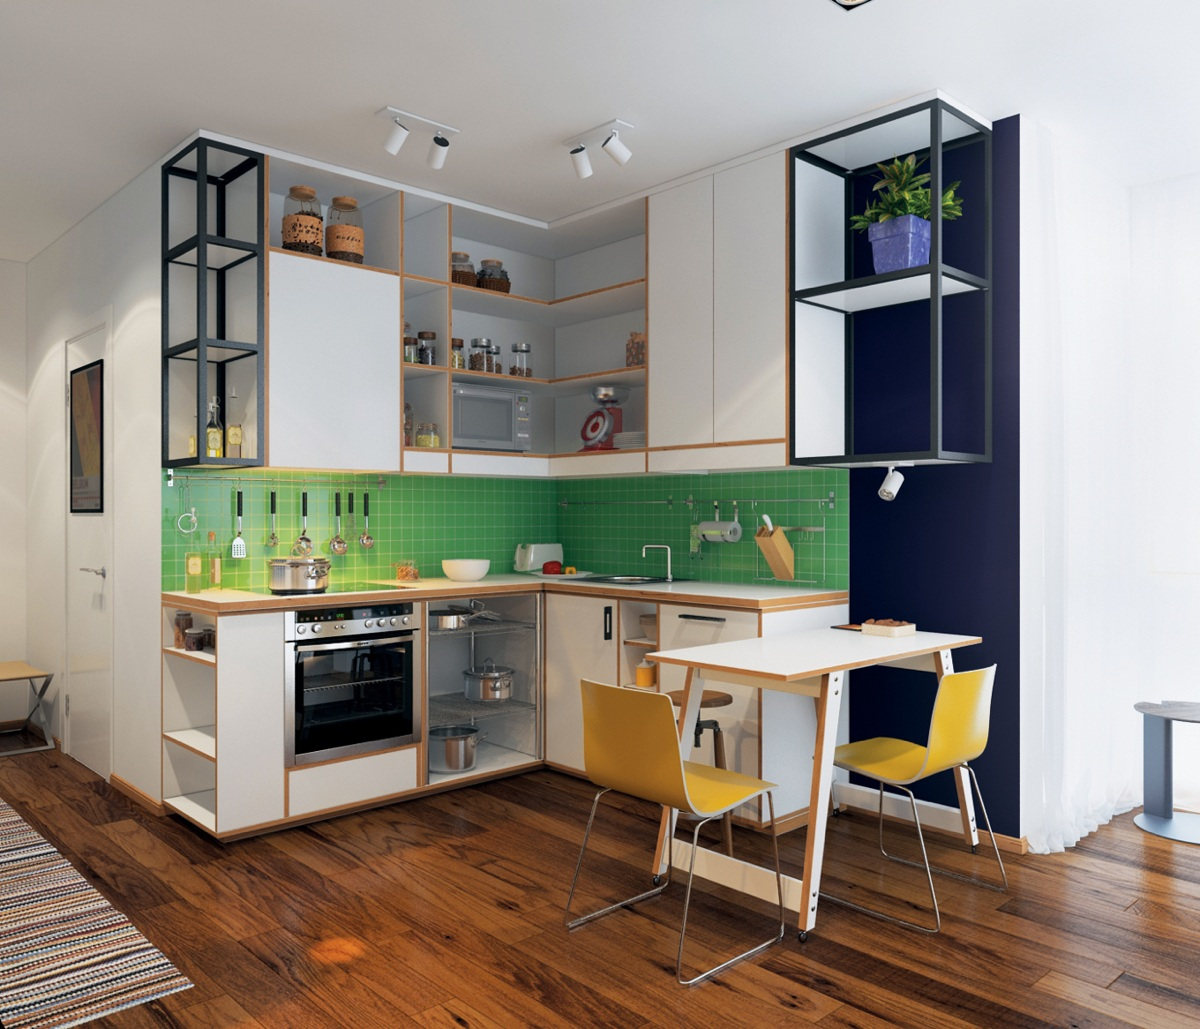 50 Small Kitchen Ideas And Designs: 50 Splendid Small Kitchens And Ideas You Can Use From Them